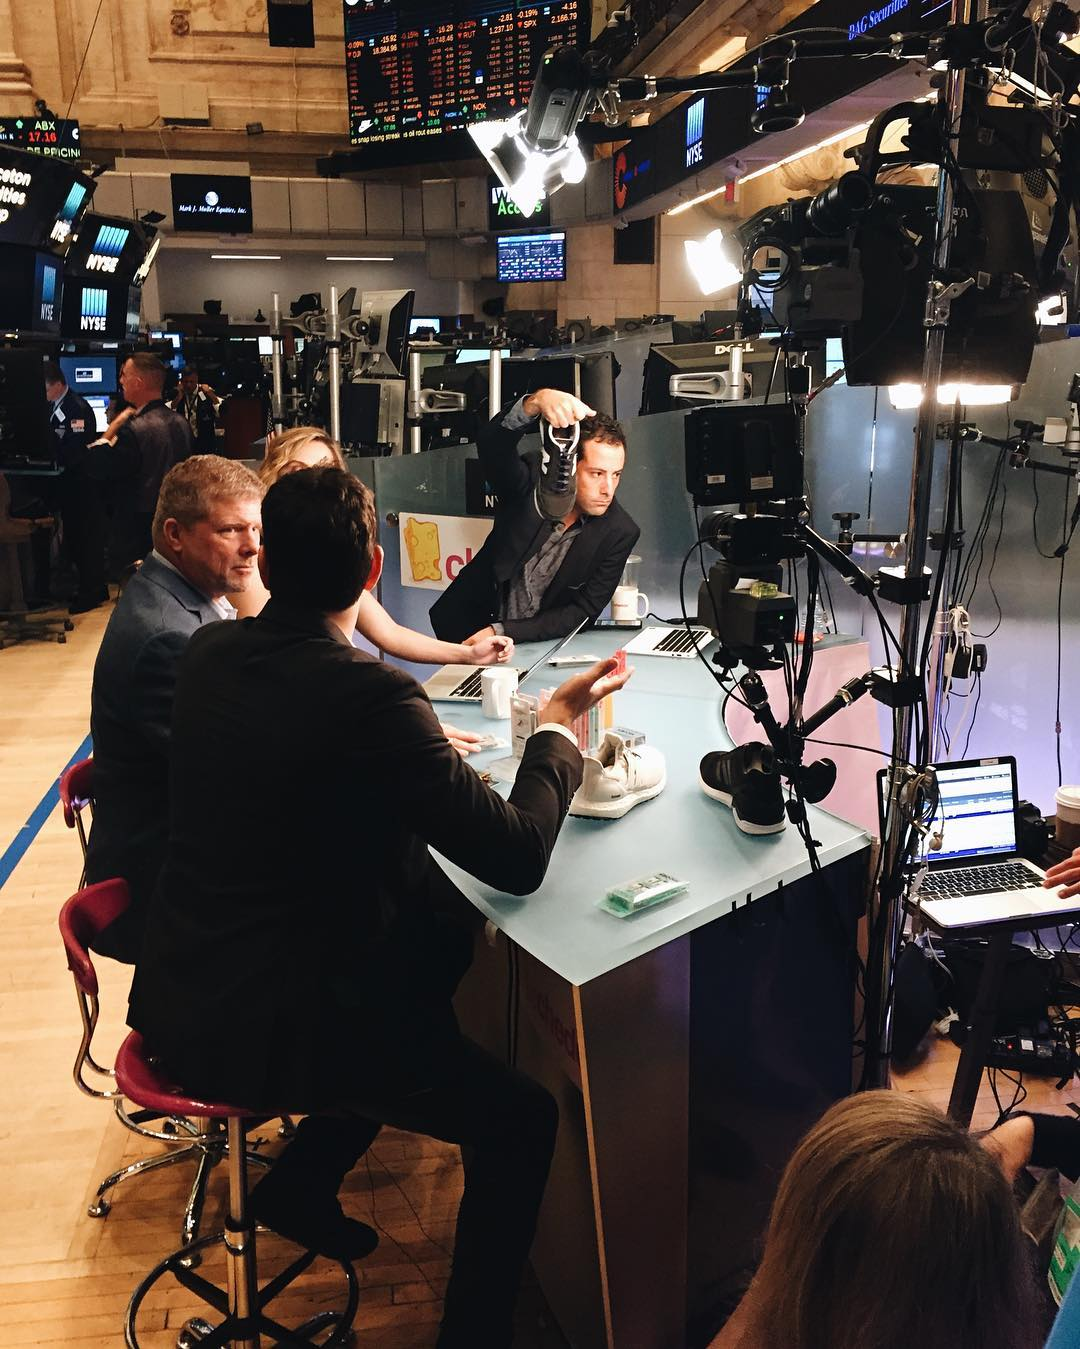 This past Thursday, we went live from the floor of the @nyse with @cheddartv! Check out the full interview via Facebook. #lifewithoutlaces